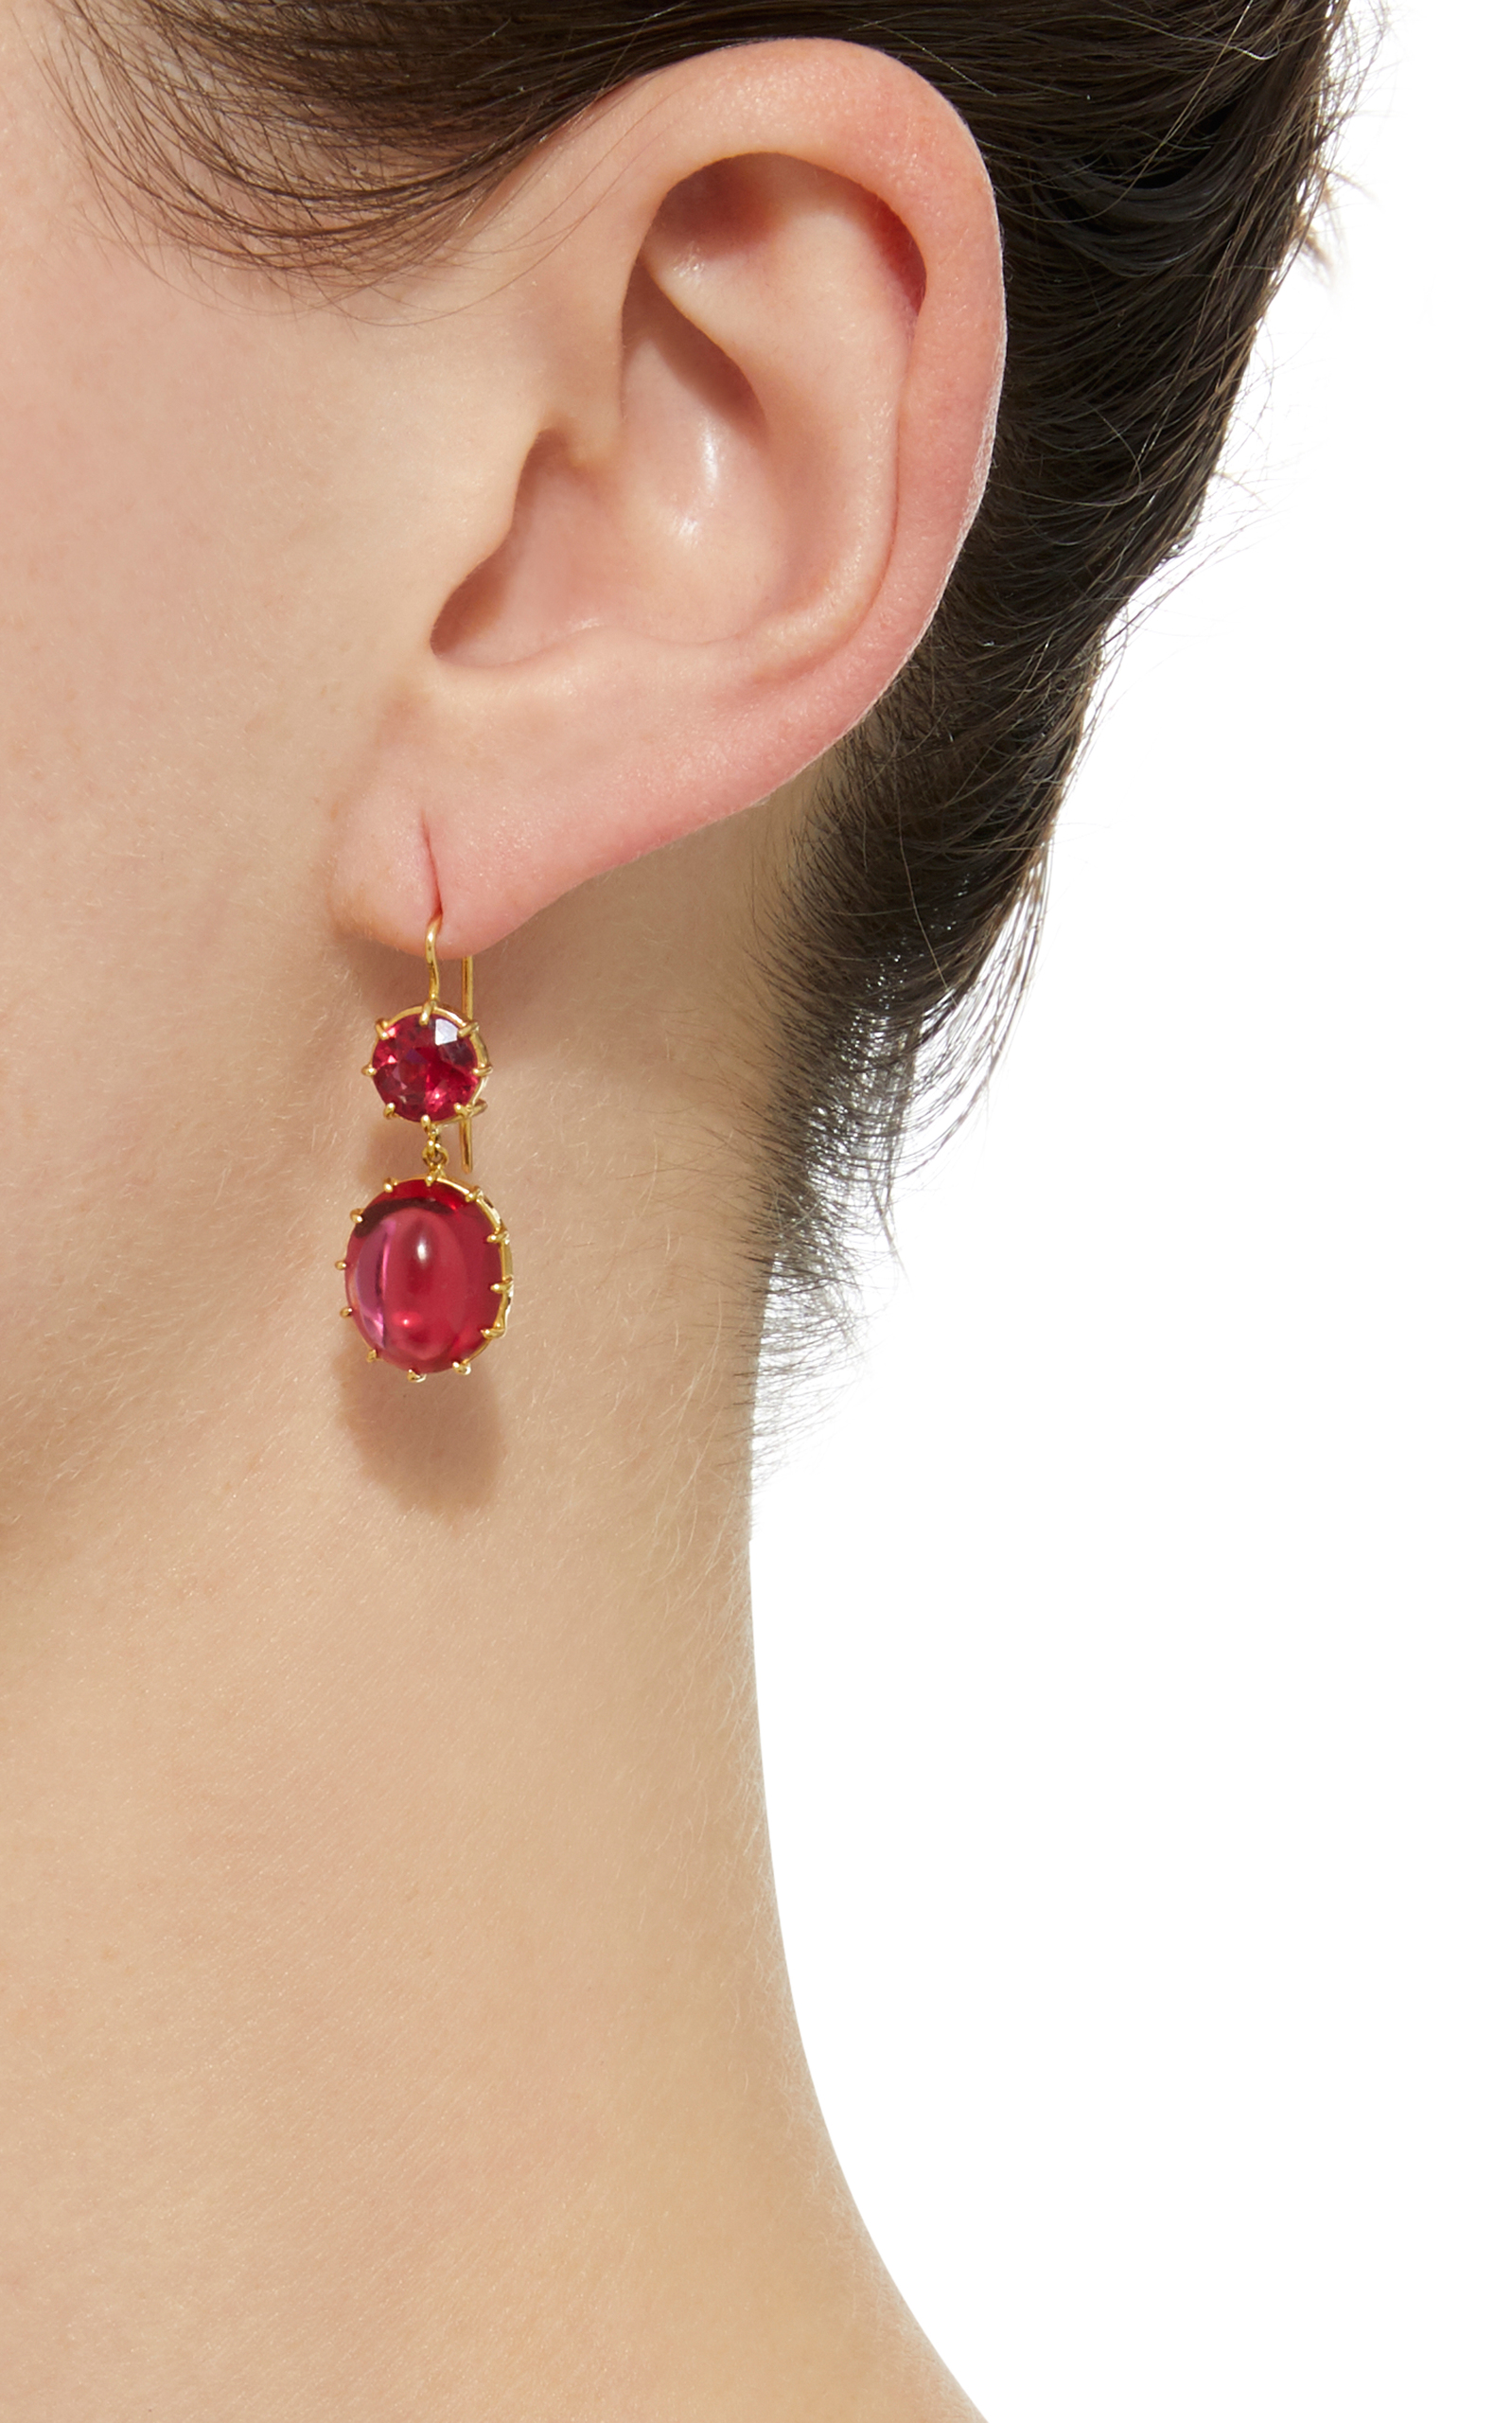 jewellery alex product earrings seven ruby thiel designs goldsmith dimples silver